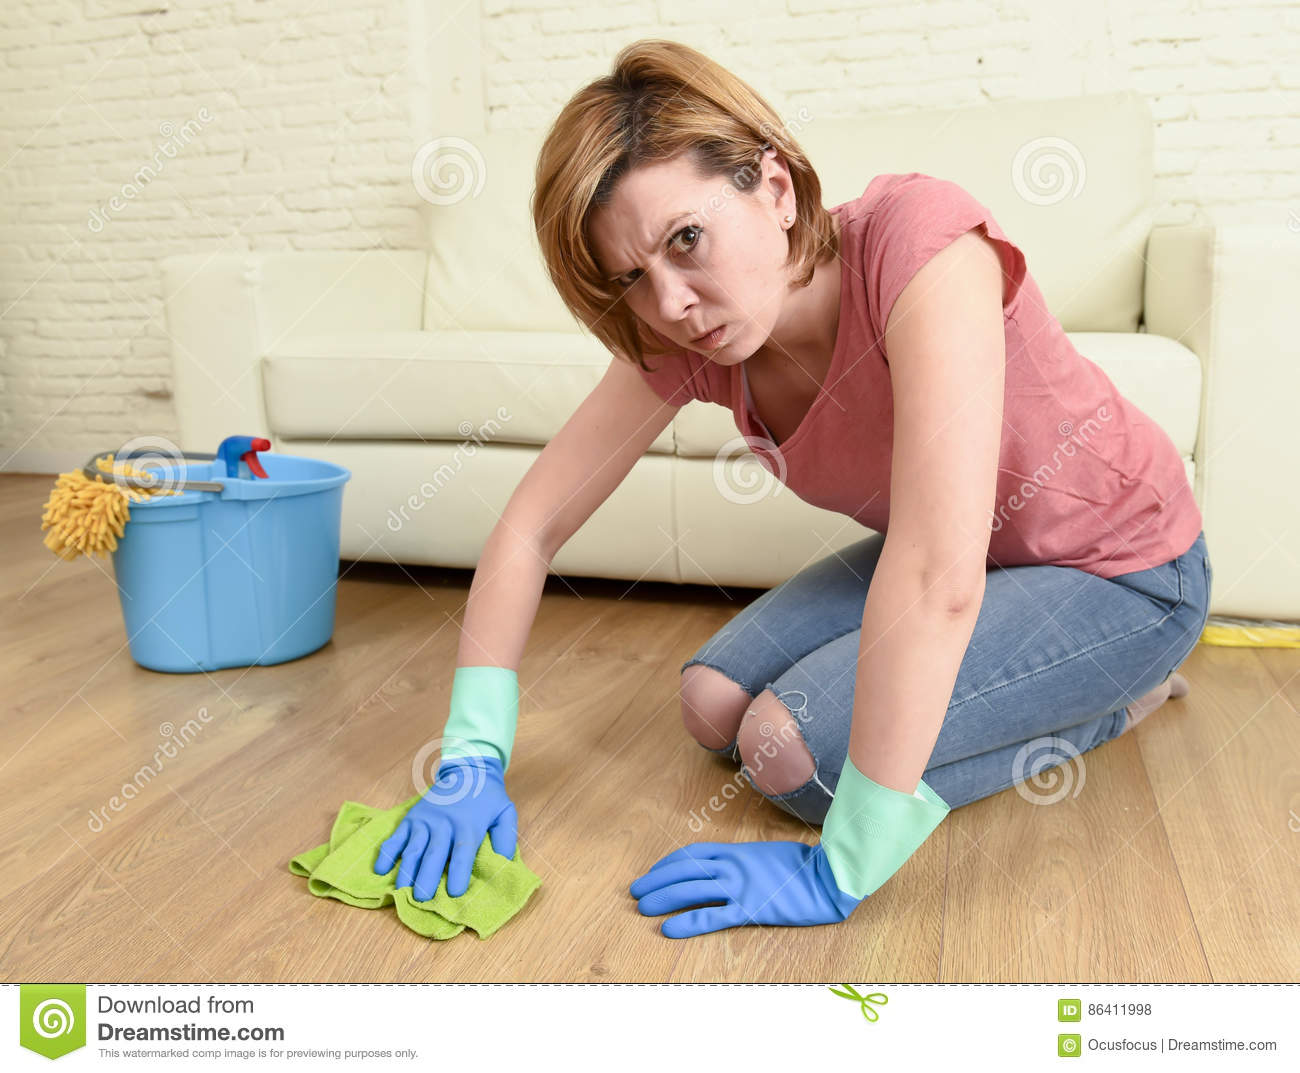 Remarkable, rather Young girl cleaning house